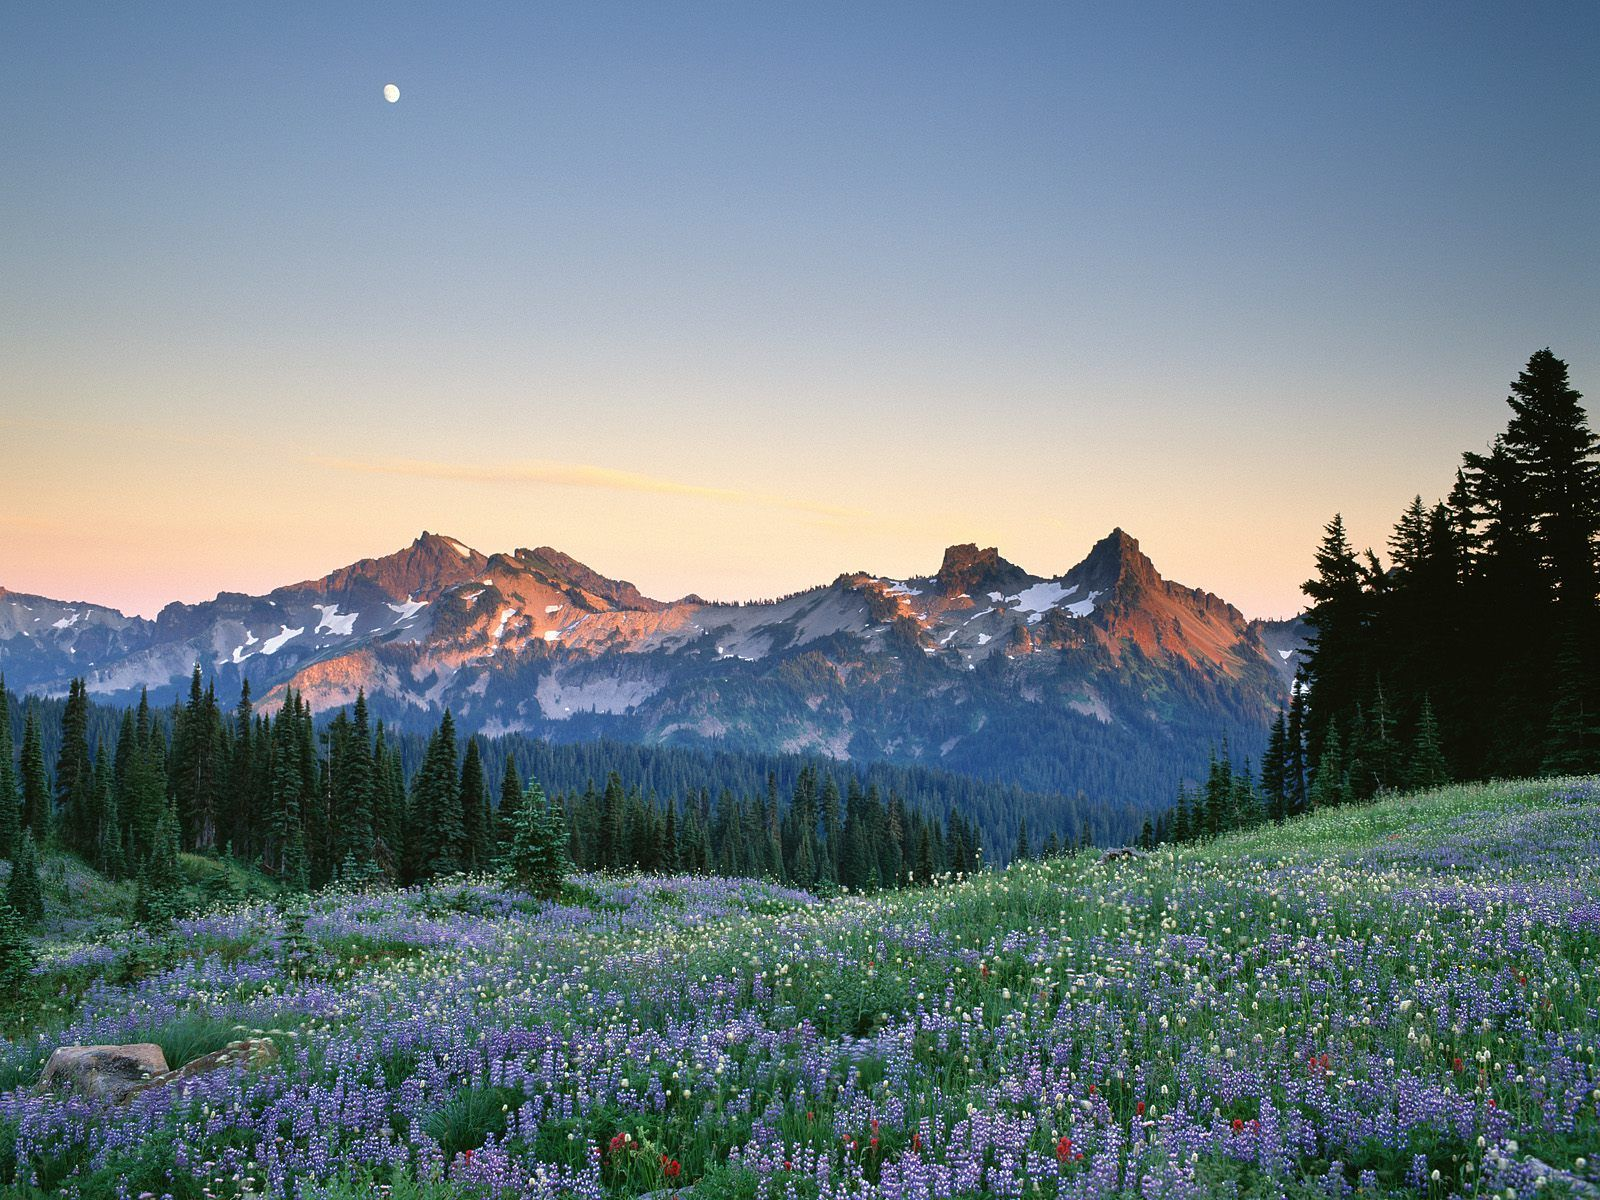 huda huda id shopping label mount rainier mountain nature wallpaper 1600x1200